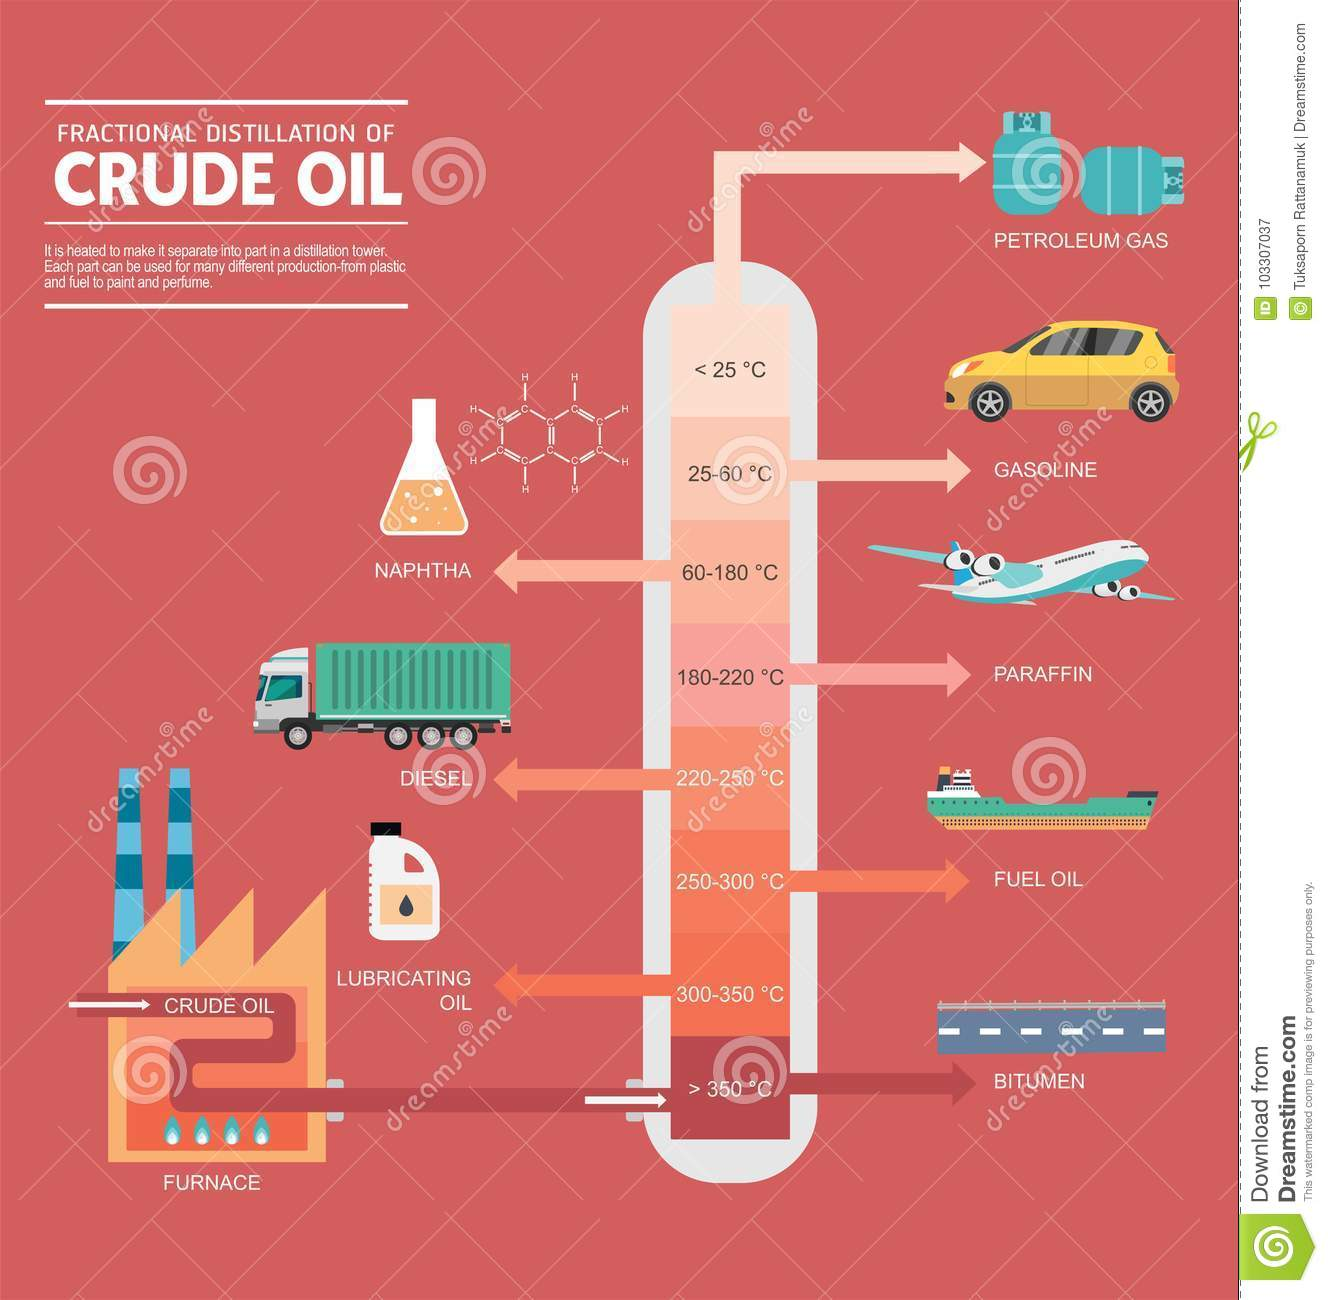 hight resolution of fractional distillation of crude oil diagram